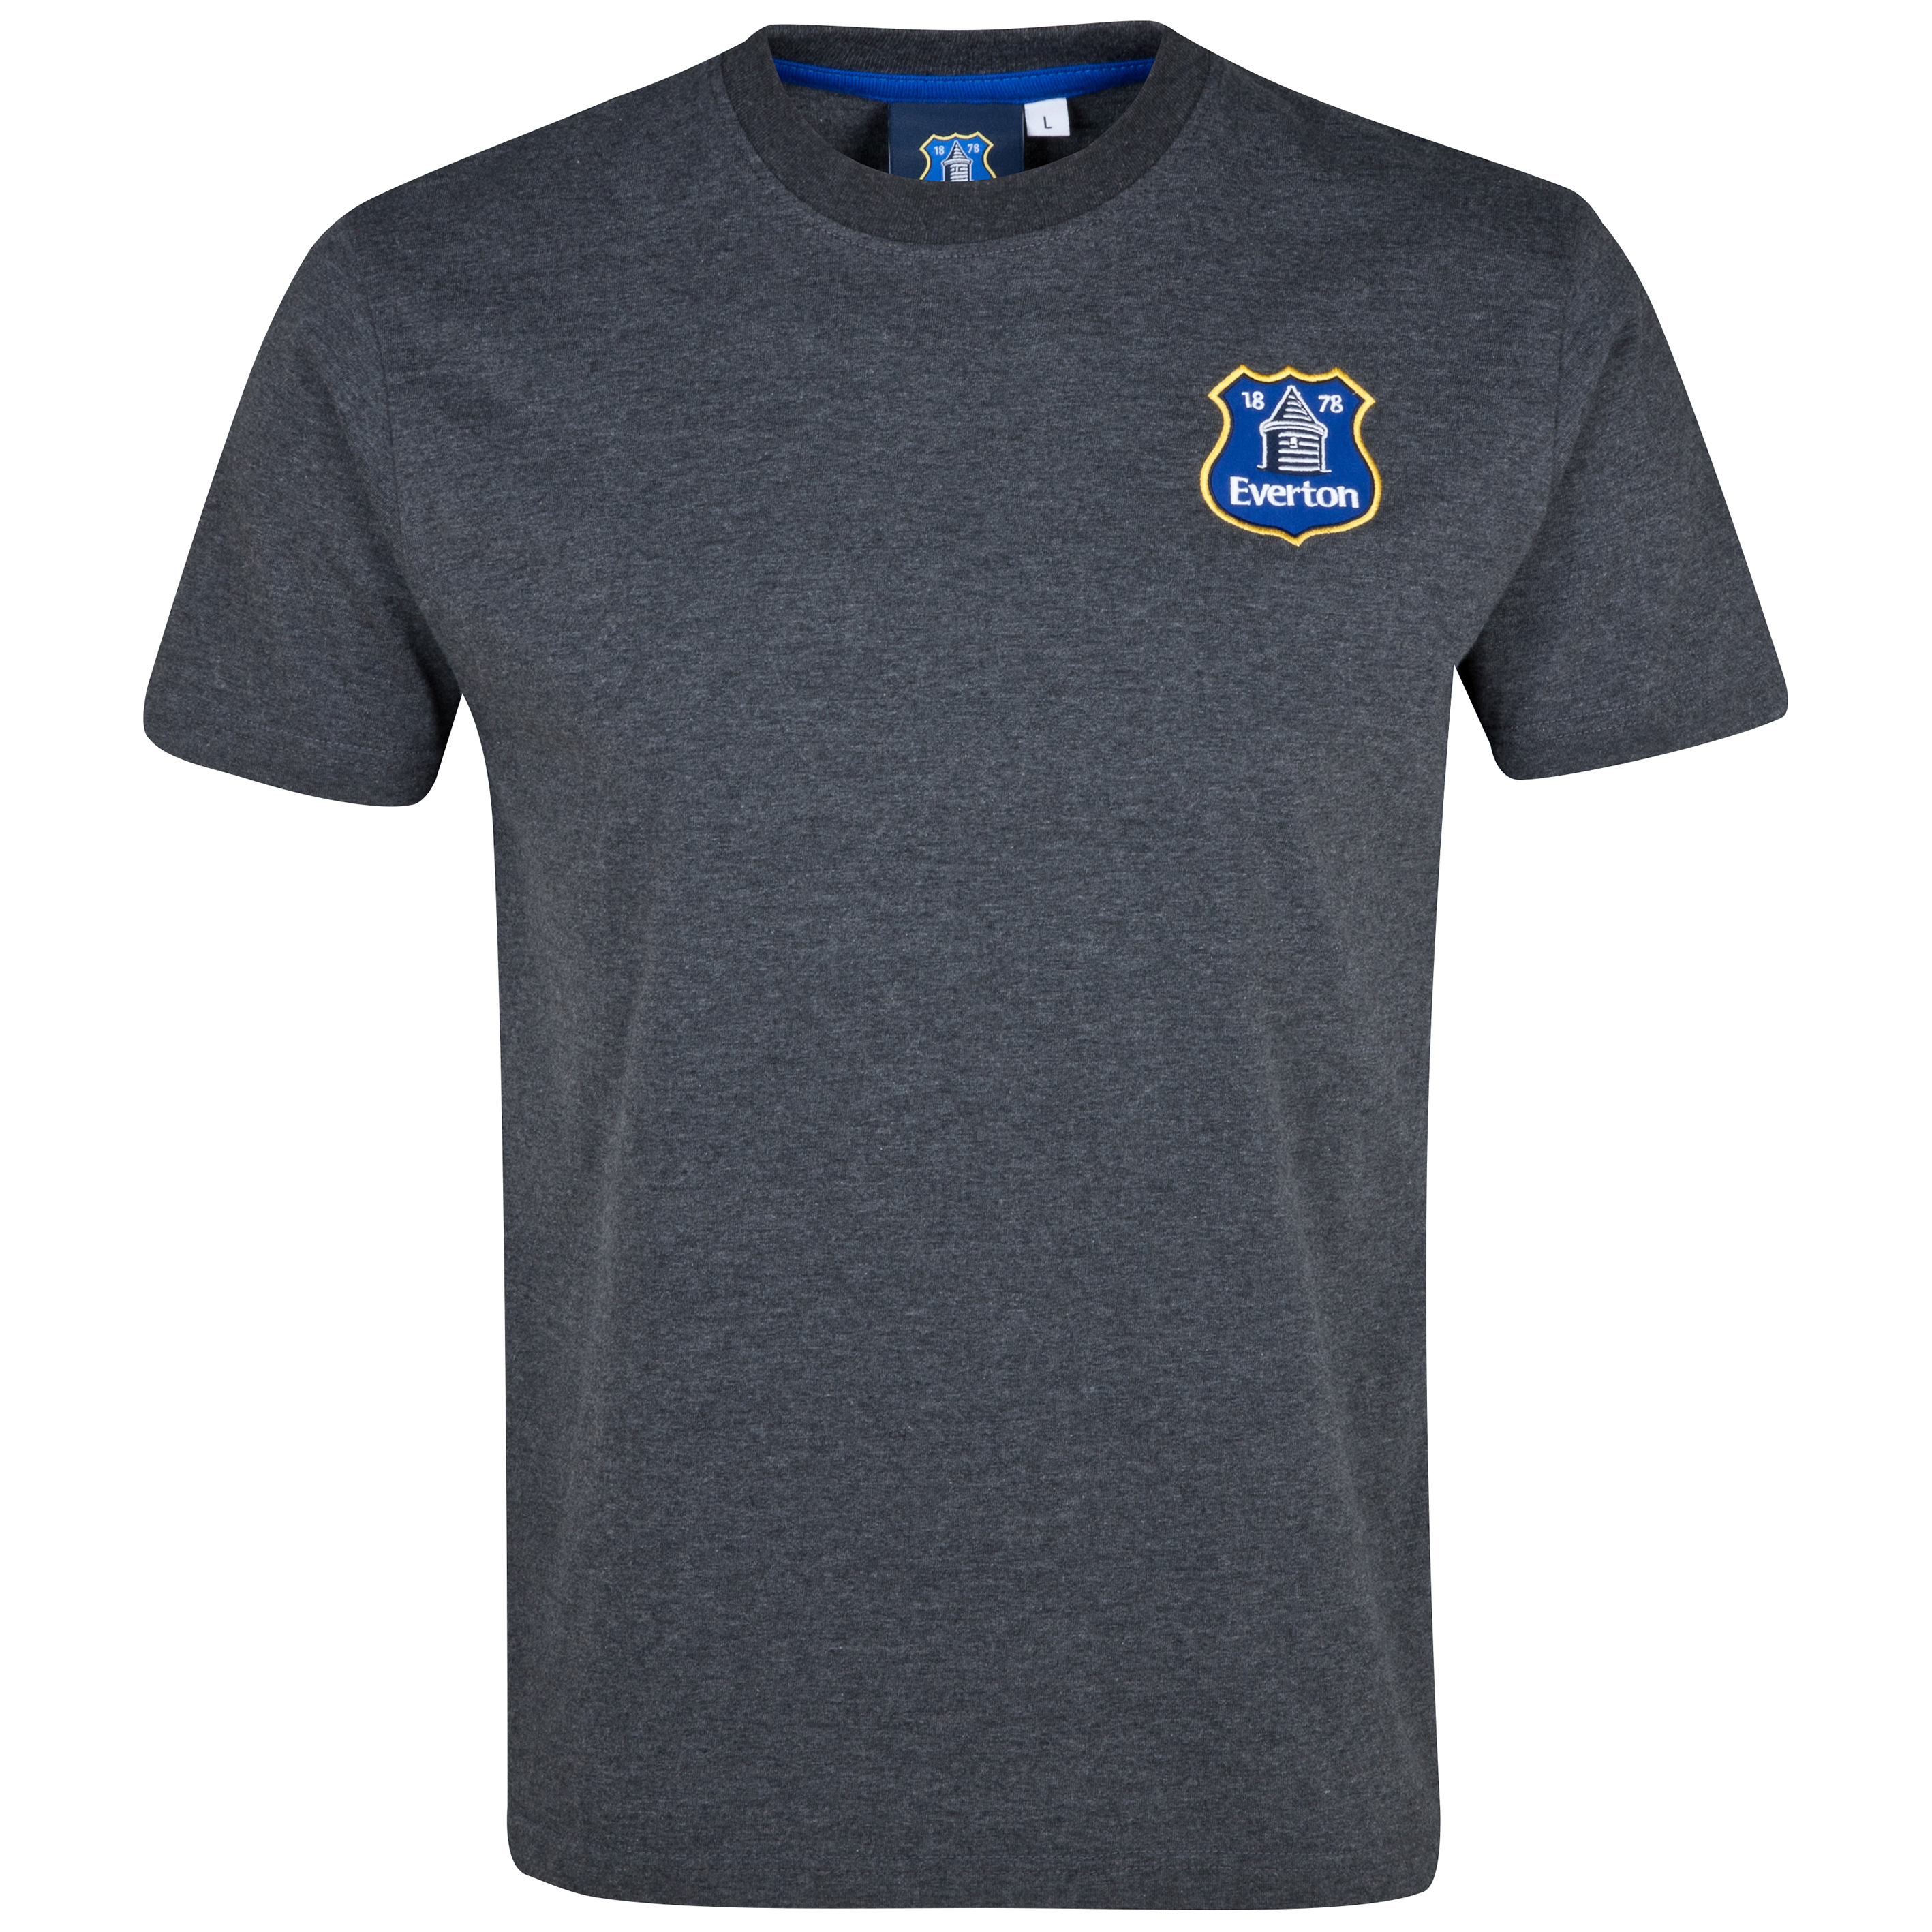 Everton Essentials Badge T-Shirt - Mens Charcoal